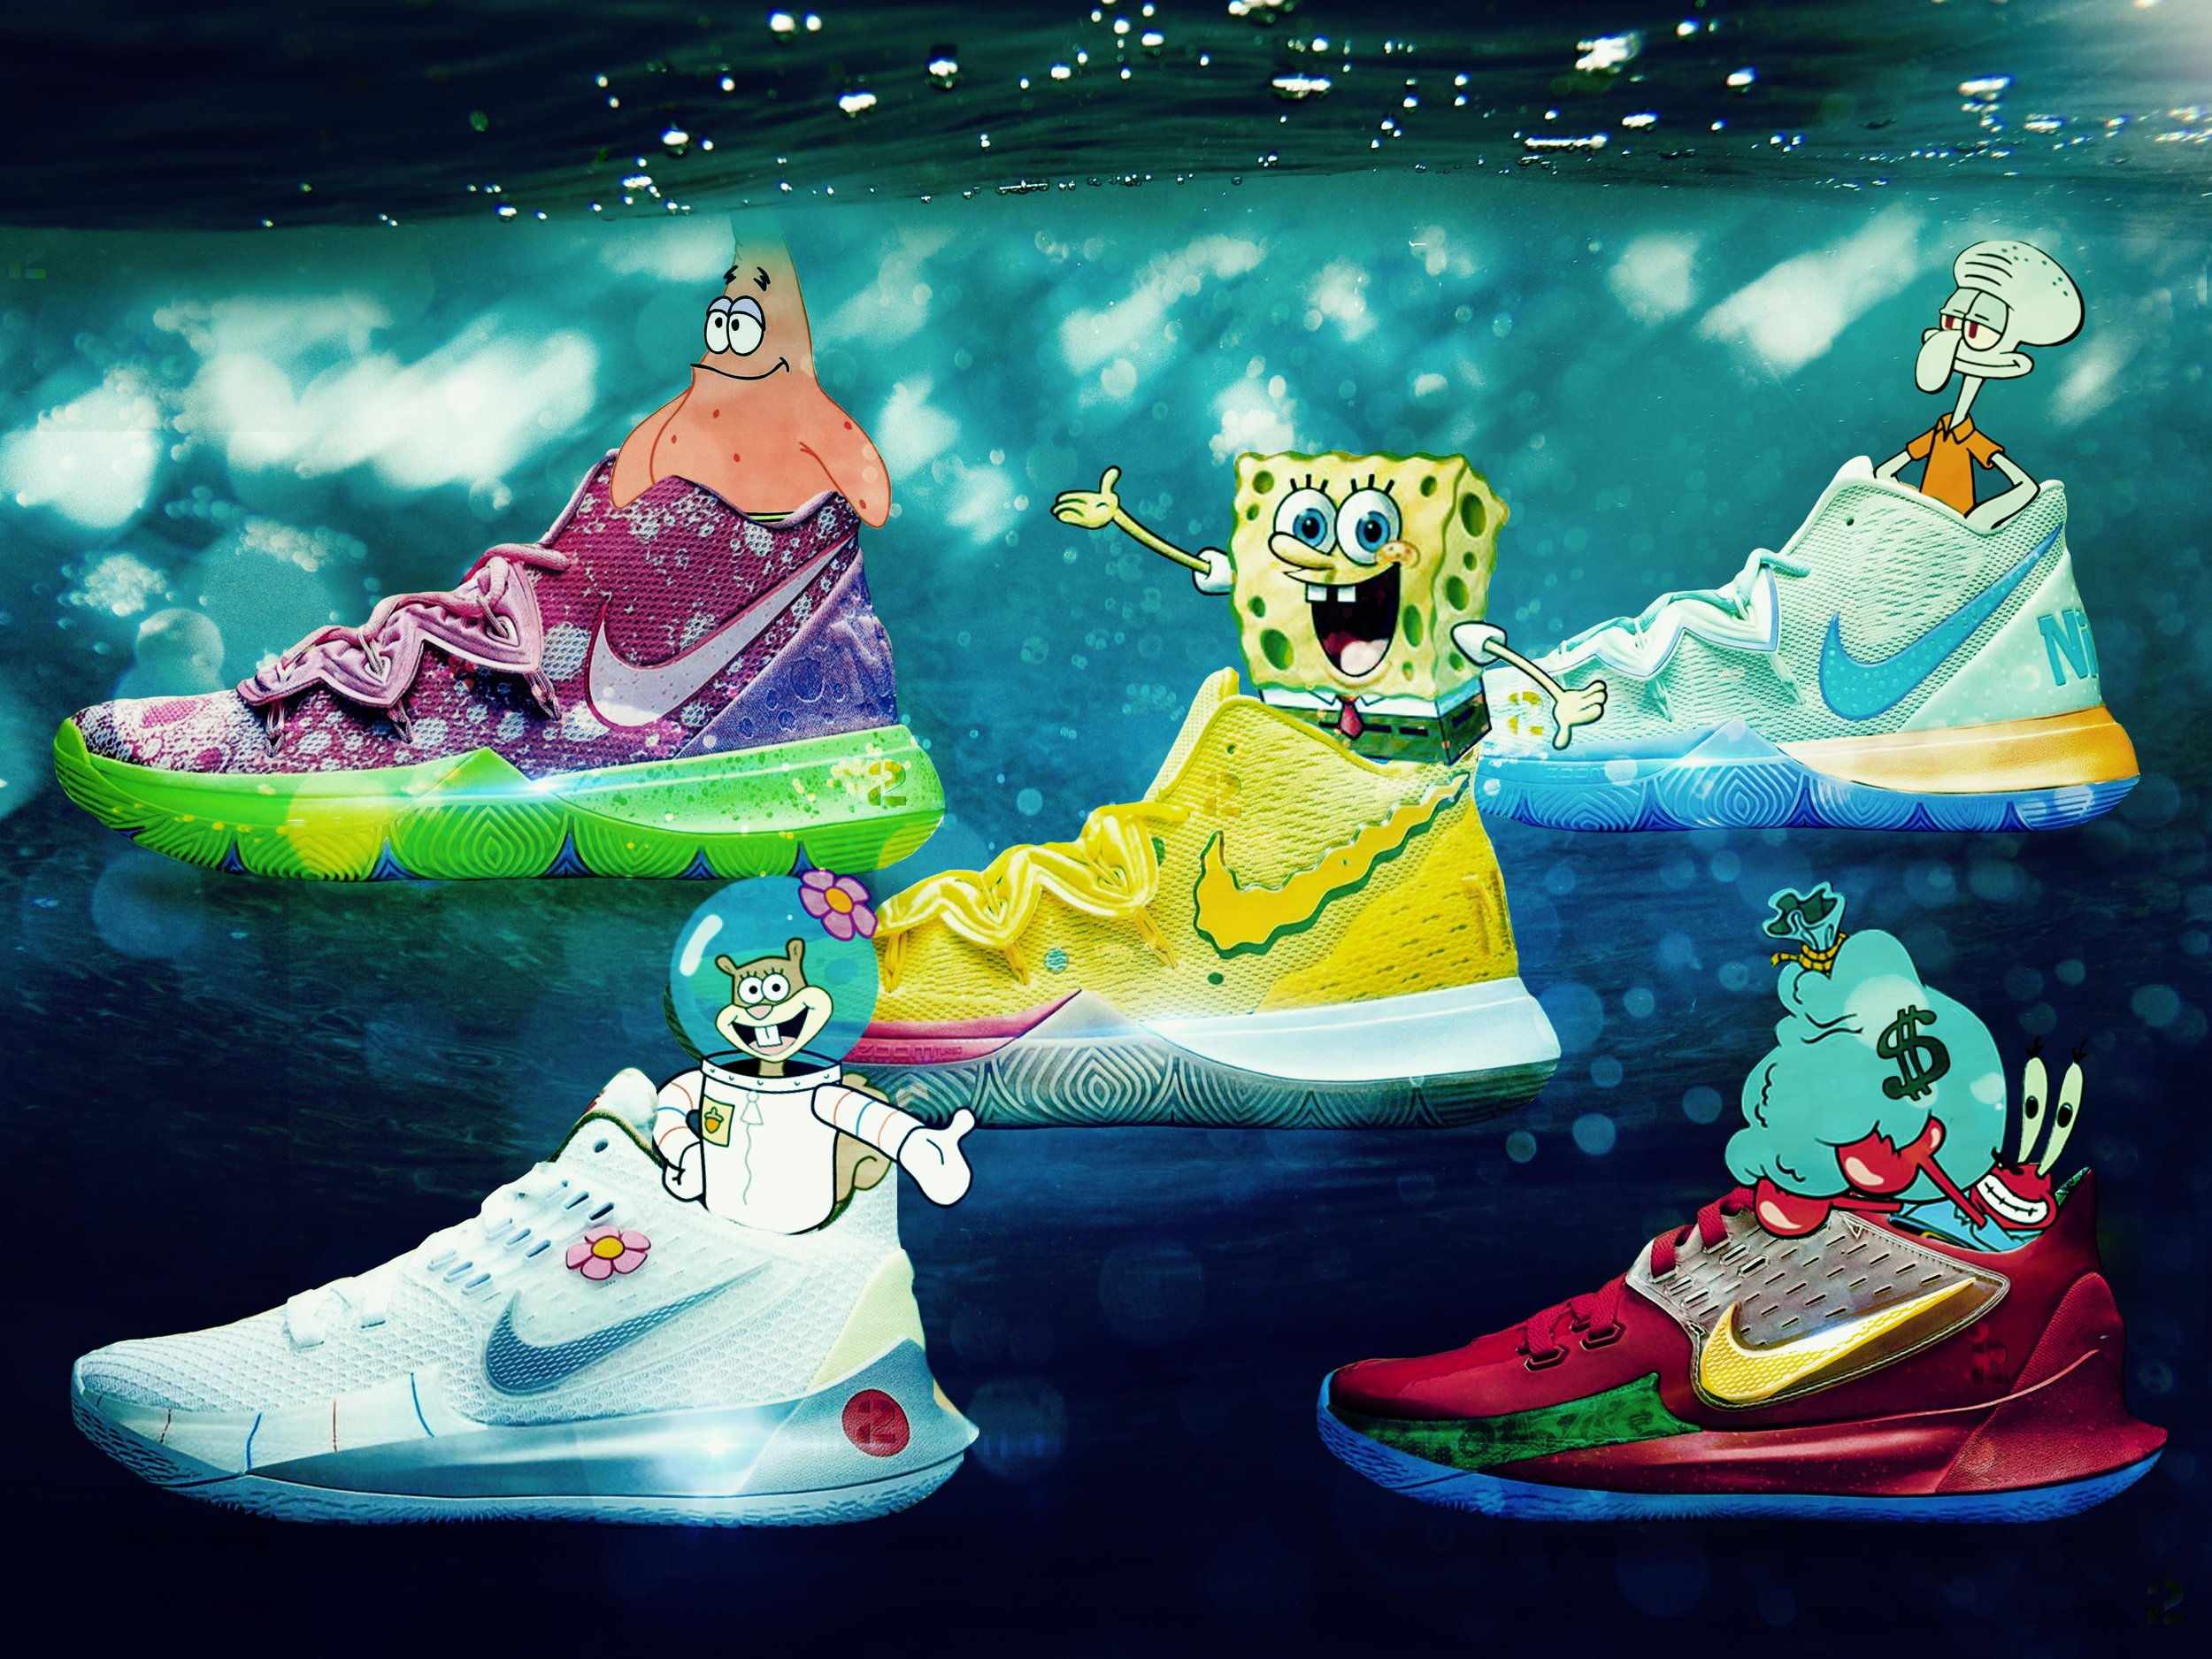 @kyrieirving x @spongebob Nike collab drops Aug. 10th ❗ ❗ which one's your favorite? Comment below 👇🏾 .